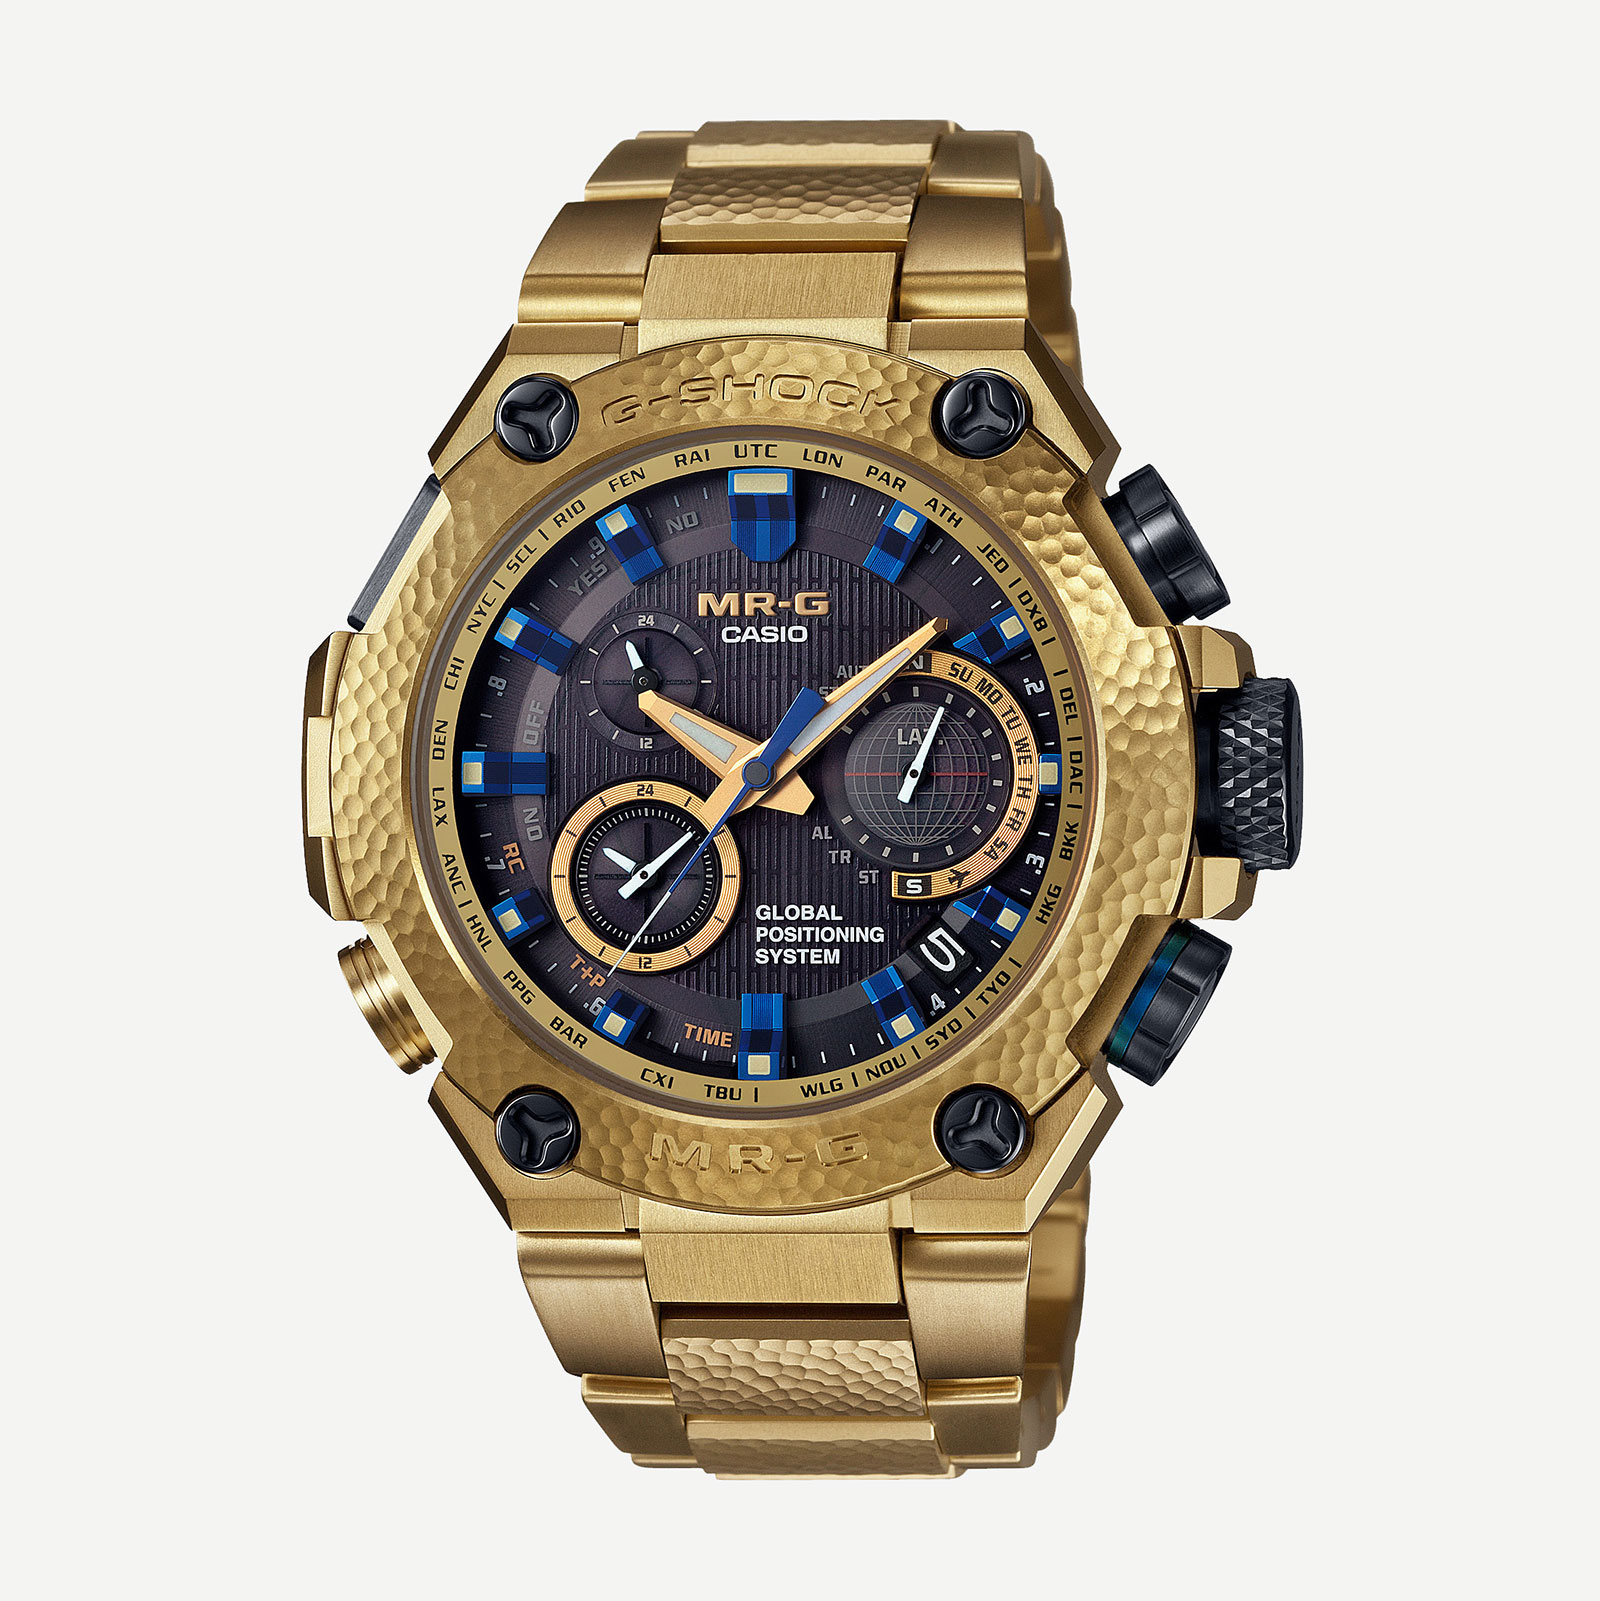 Casio G-Shock MR-G Gold Hammer Tone 7